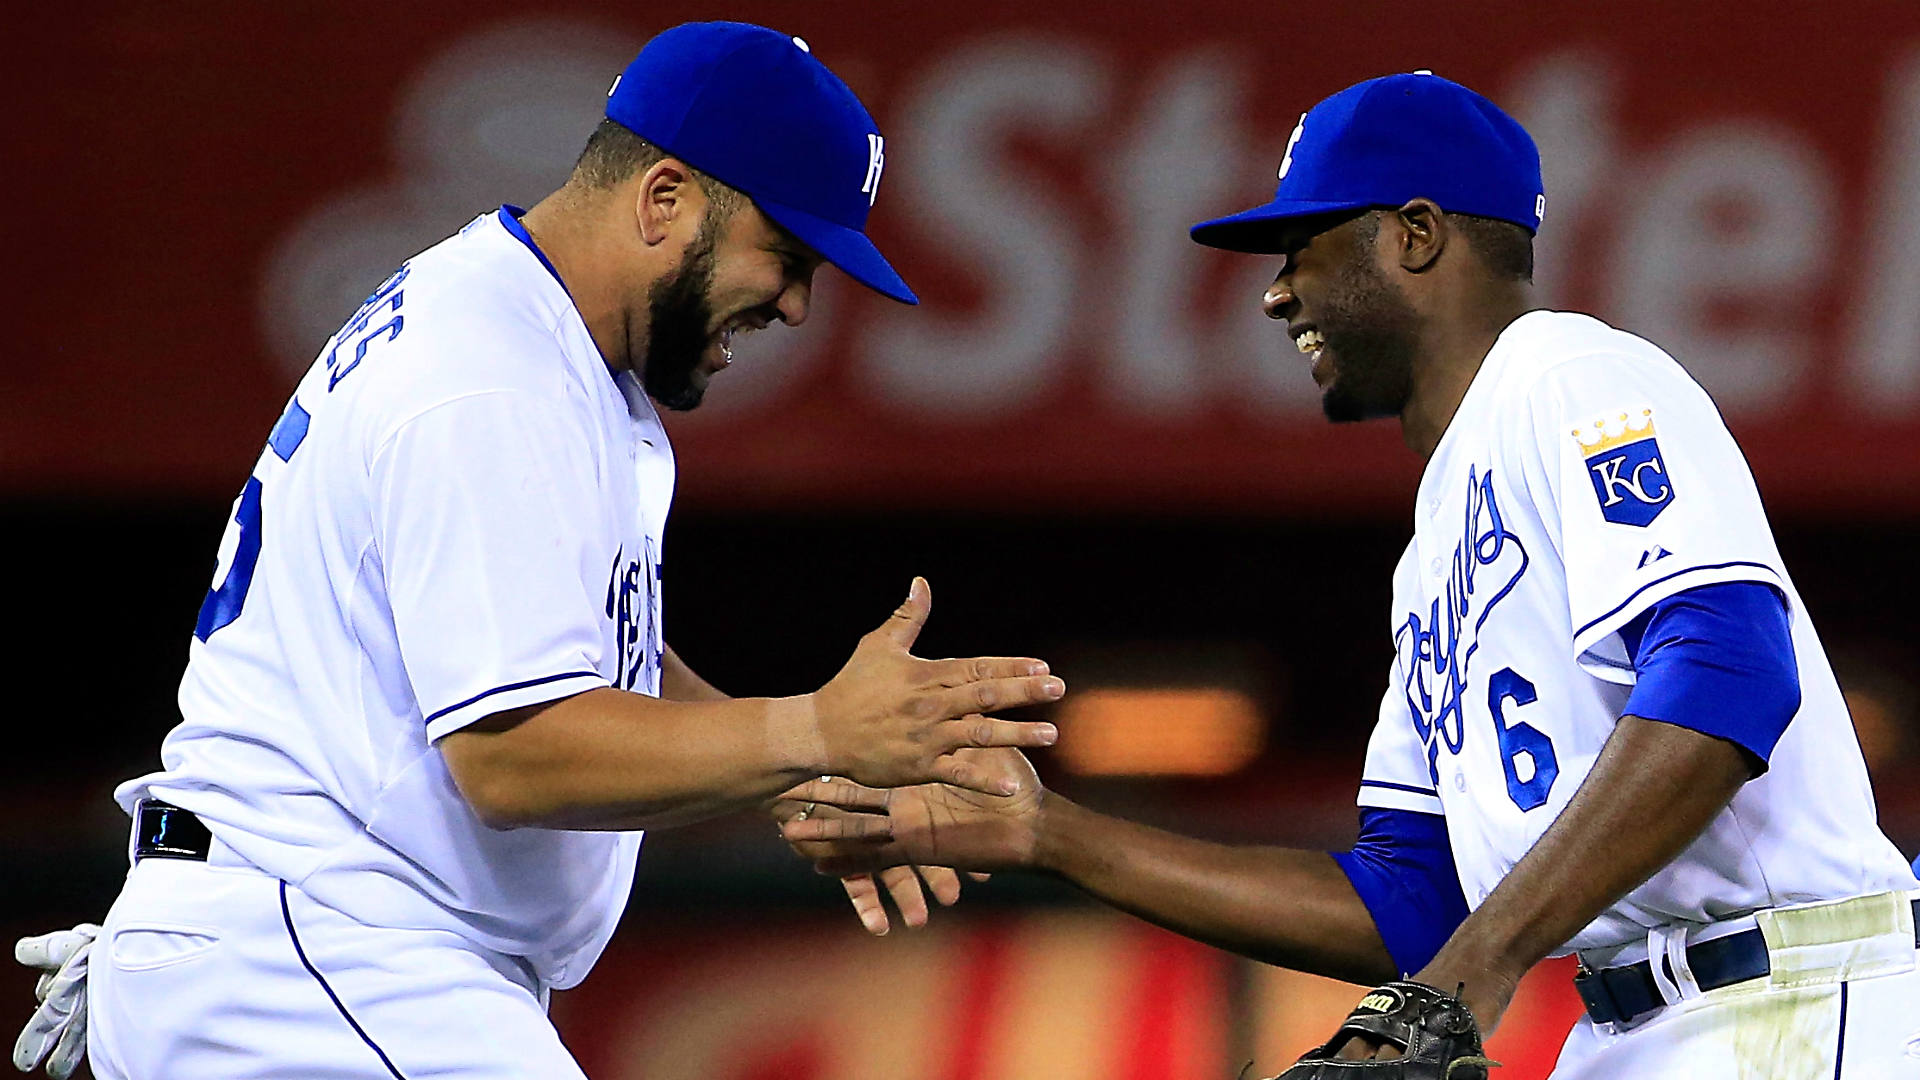 Royals staying loose in pursuit of second straight American League pennant